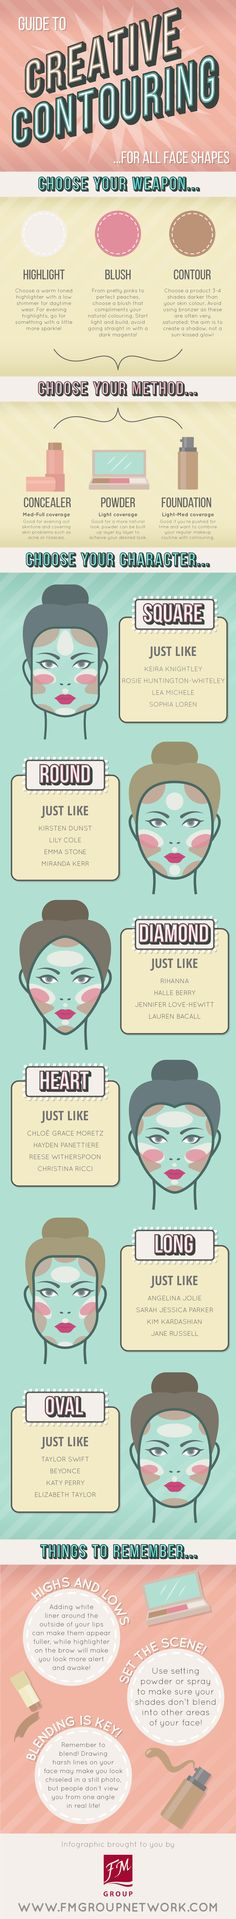 Guide to creative contouring for all face shapes..